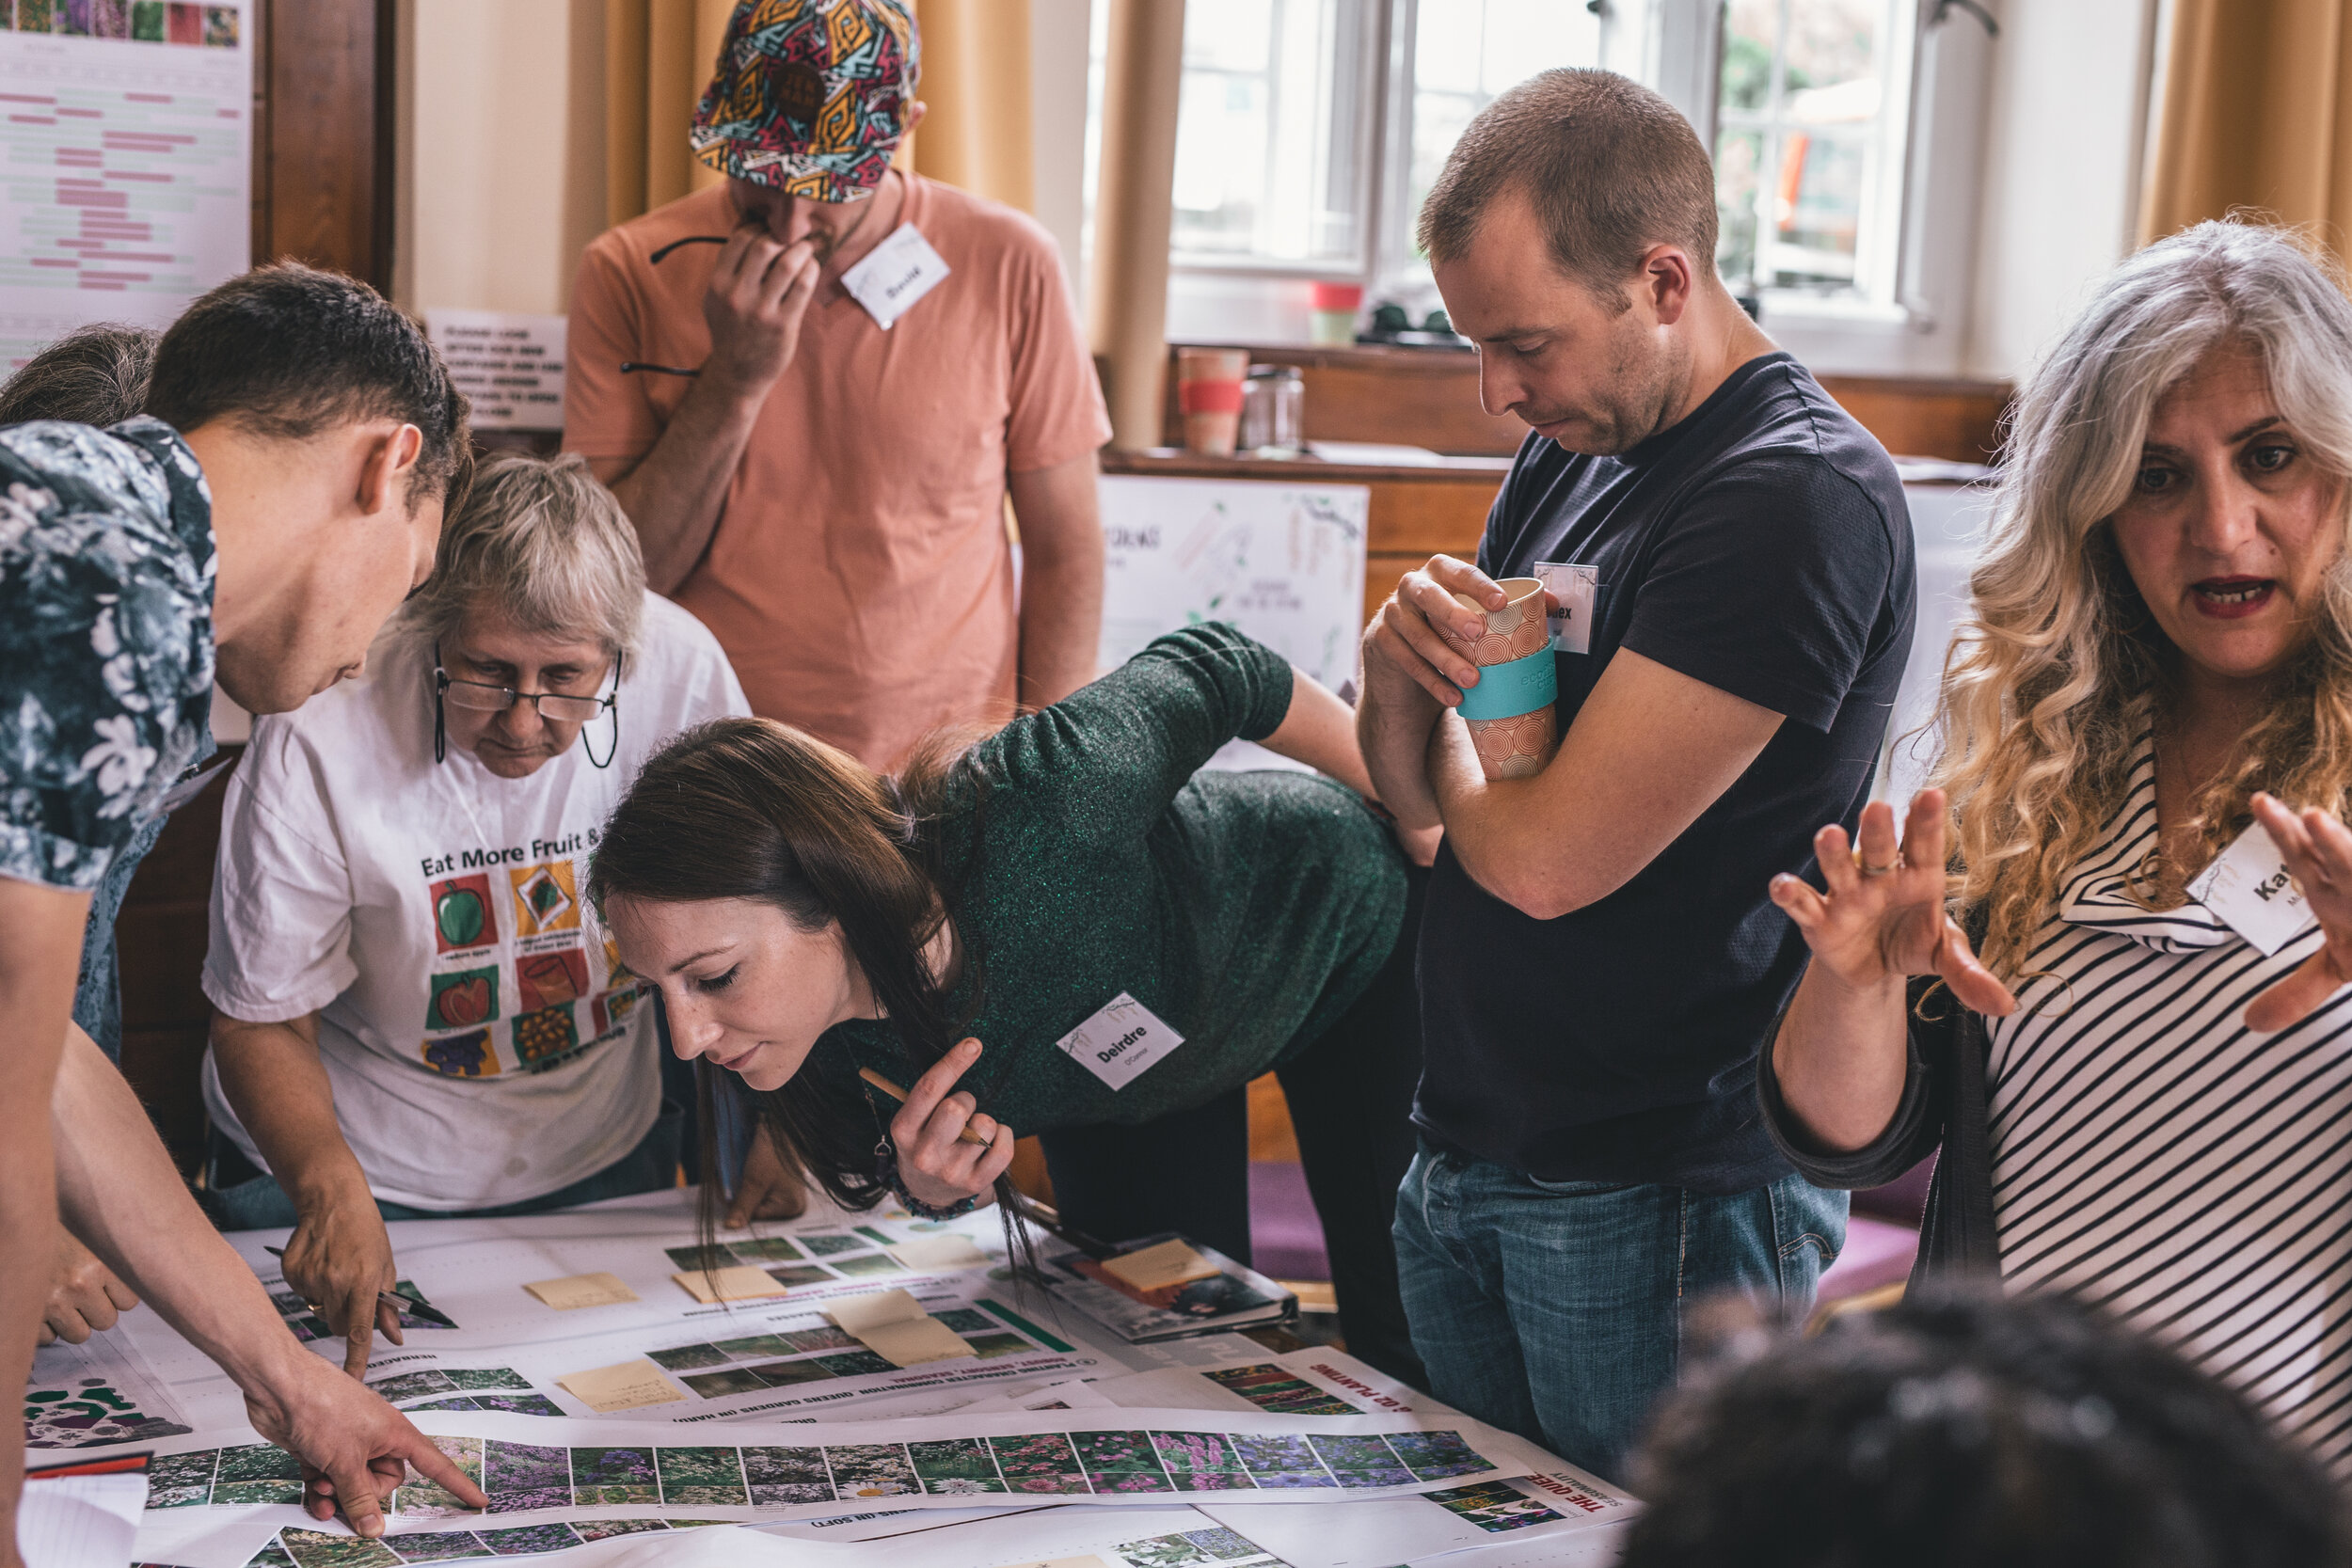 Community co-design projects like HUB's in Croydon can help engage local people in developments at an early stage